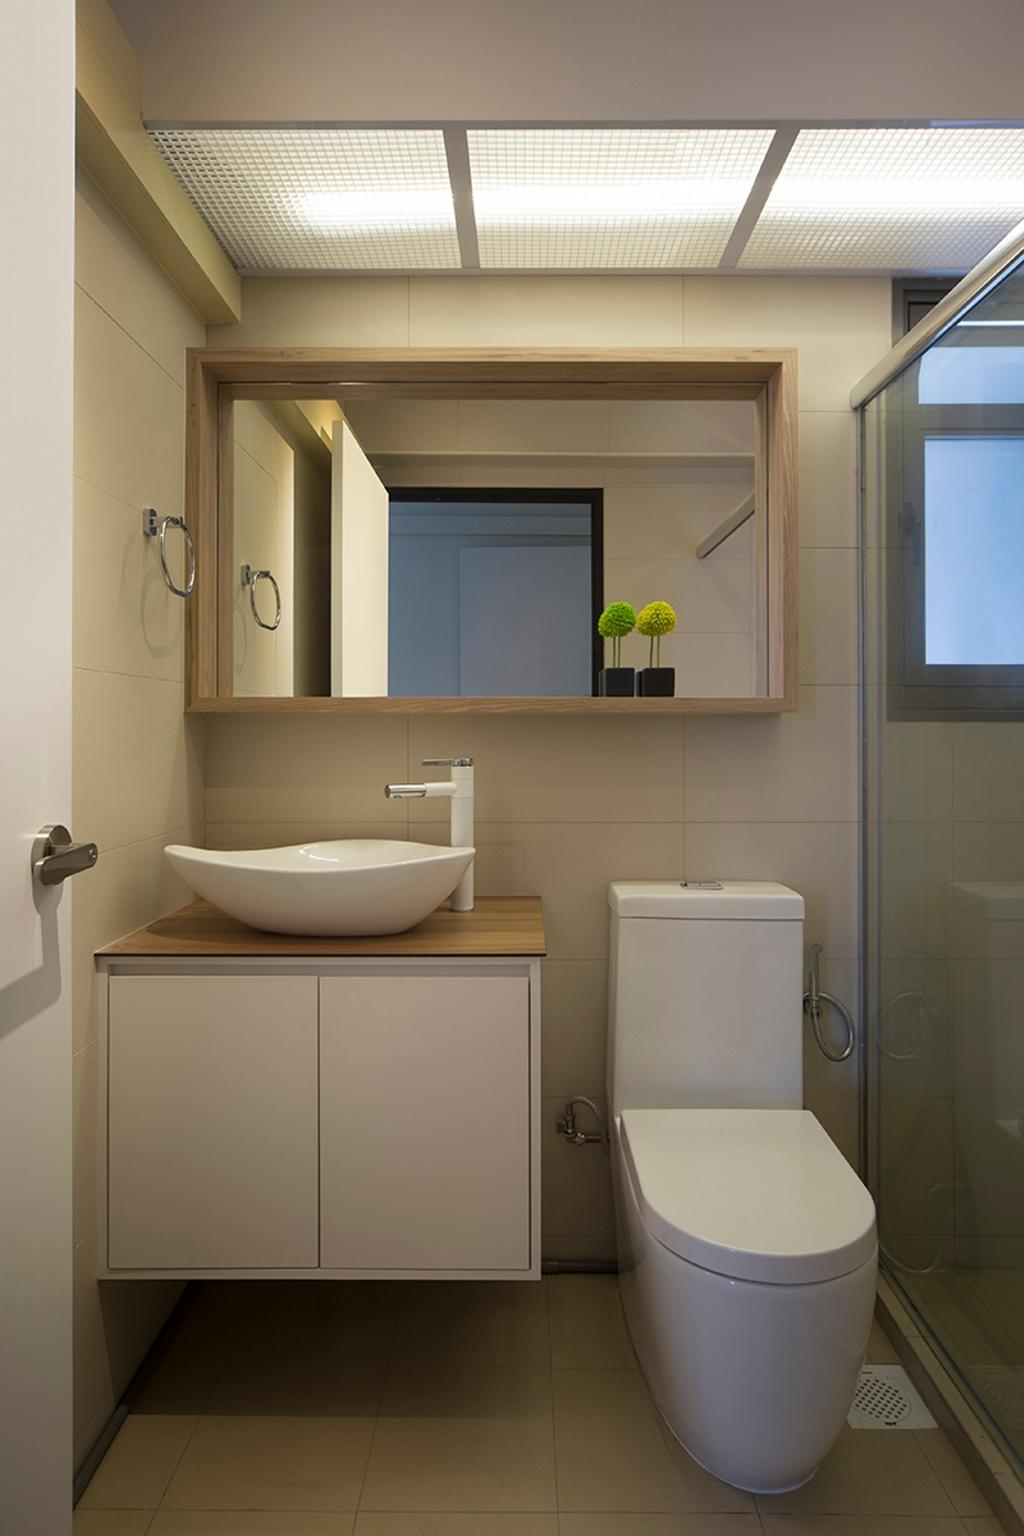 Qanvast | Home Design, Renovation, Remodelling & Furnishing Ideas on contemporary vanity sink, contemporary hutch design, contemporary bedroom, shower design, contemporary glass sinks, contemporary tree house design, contemporary walkway design, contemporary gym design, contemporary siding design, contemporary boat design, contemporary design trends, contemporary tv room design, contemporary baby design, contemporary food design, contemporary garage designs, contemporary interior design, contemporary showers, contemporary powder room design, contemporary awning design, contemporary stair designs,